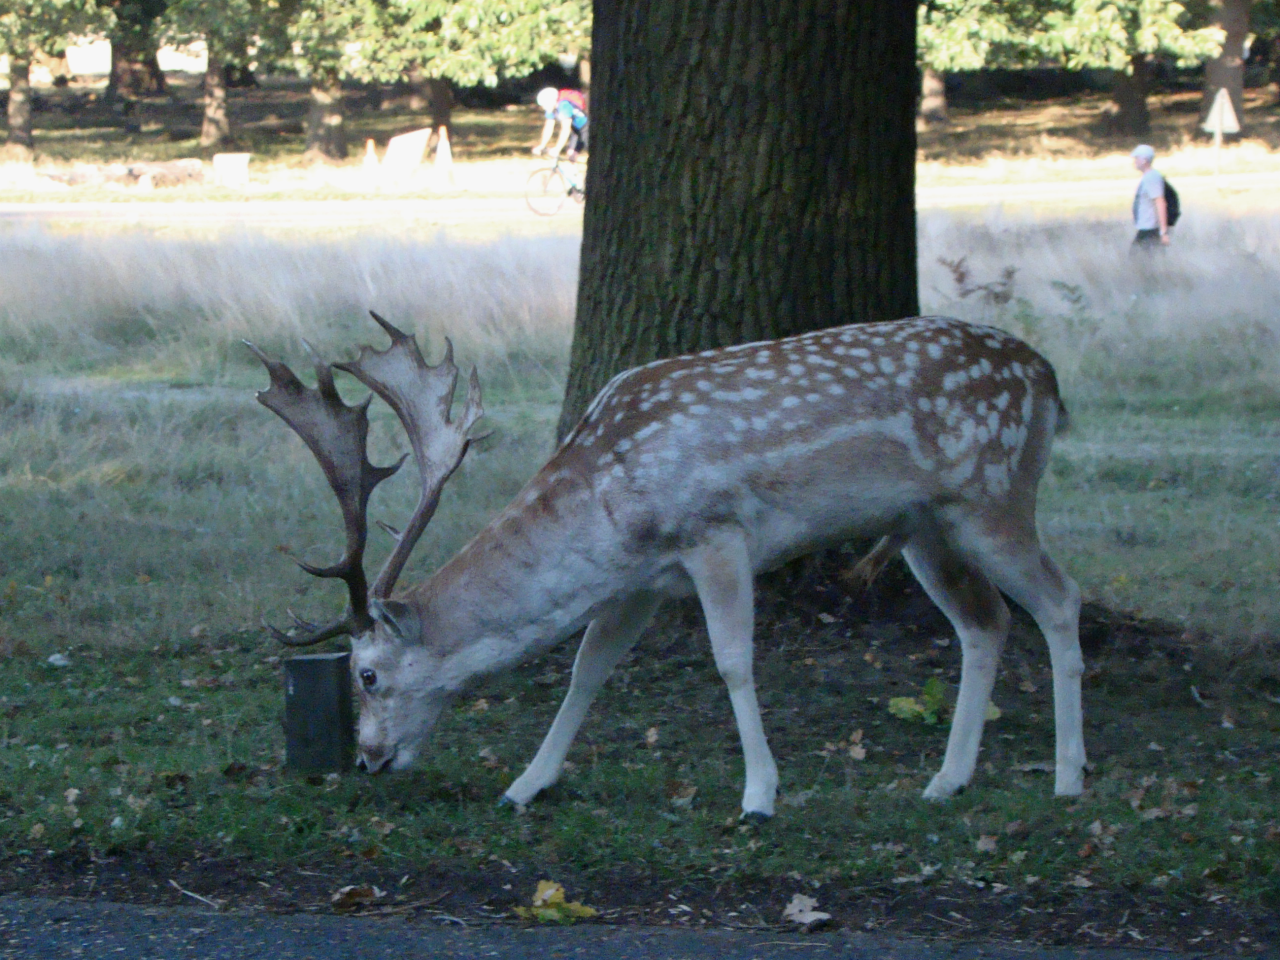 Fallow deer in Richmond Park, photographed on 17 September 2018